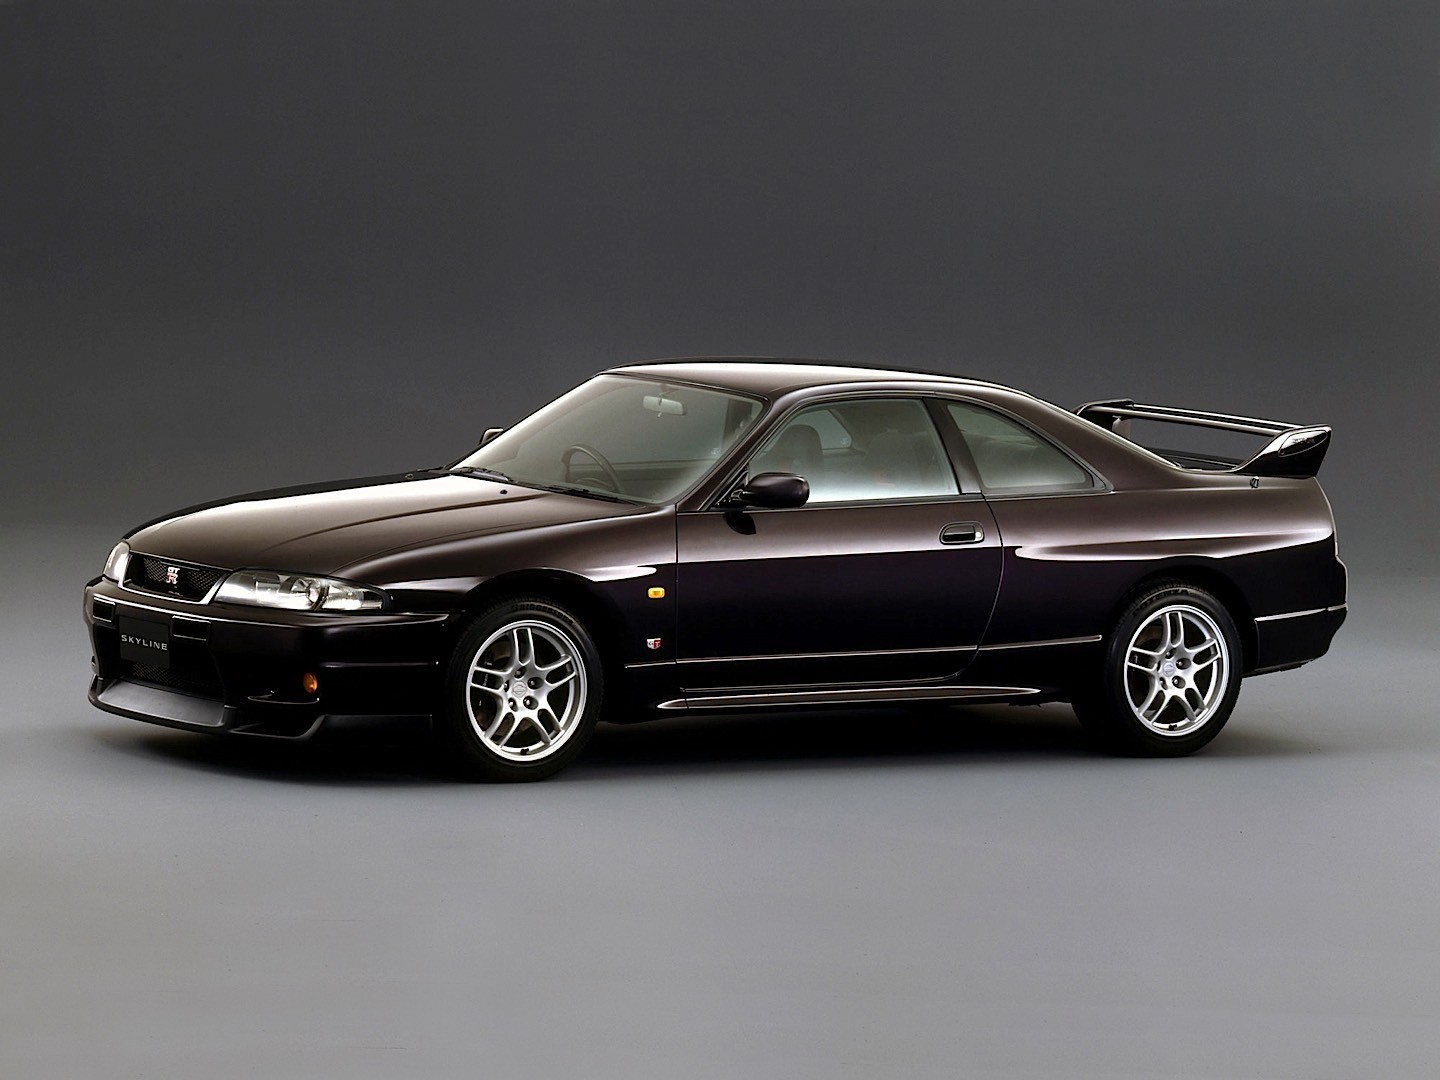 NISSAN Skyline GT-R (R33) specs & photos - 1995, 1996 ...